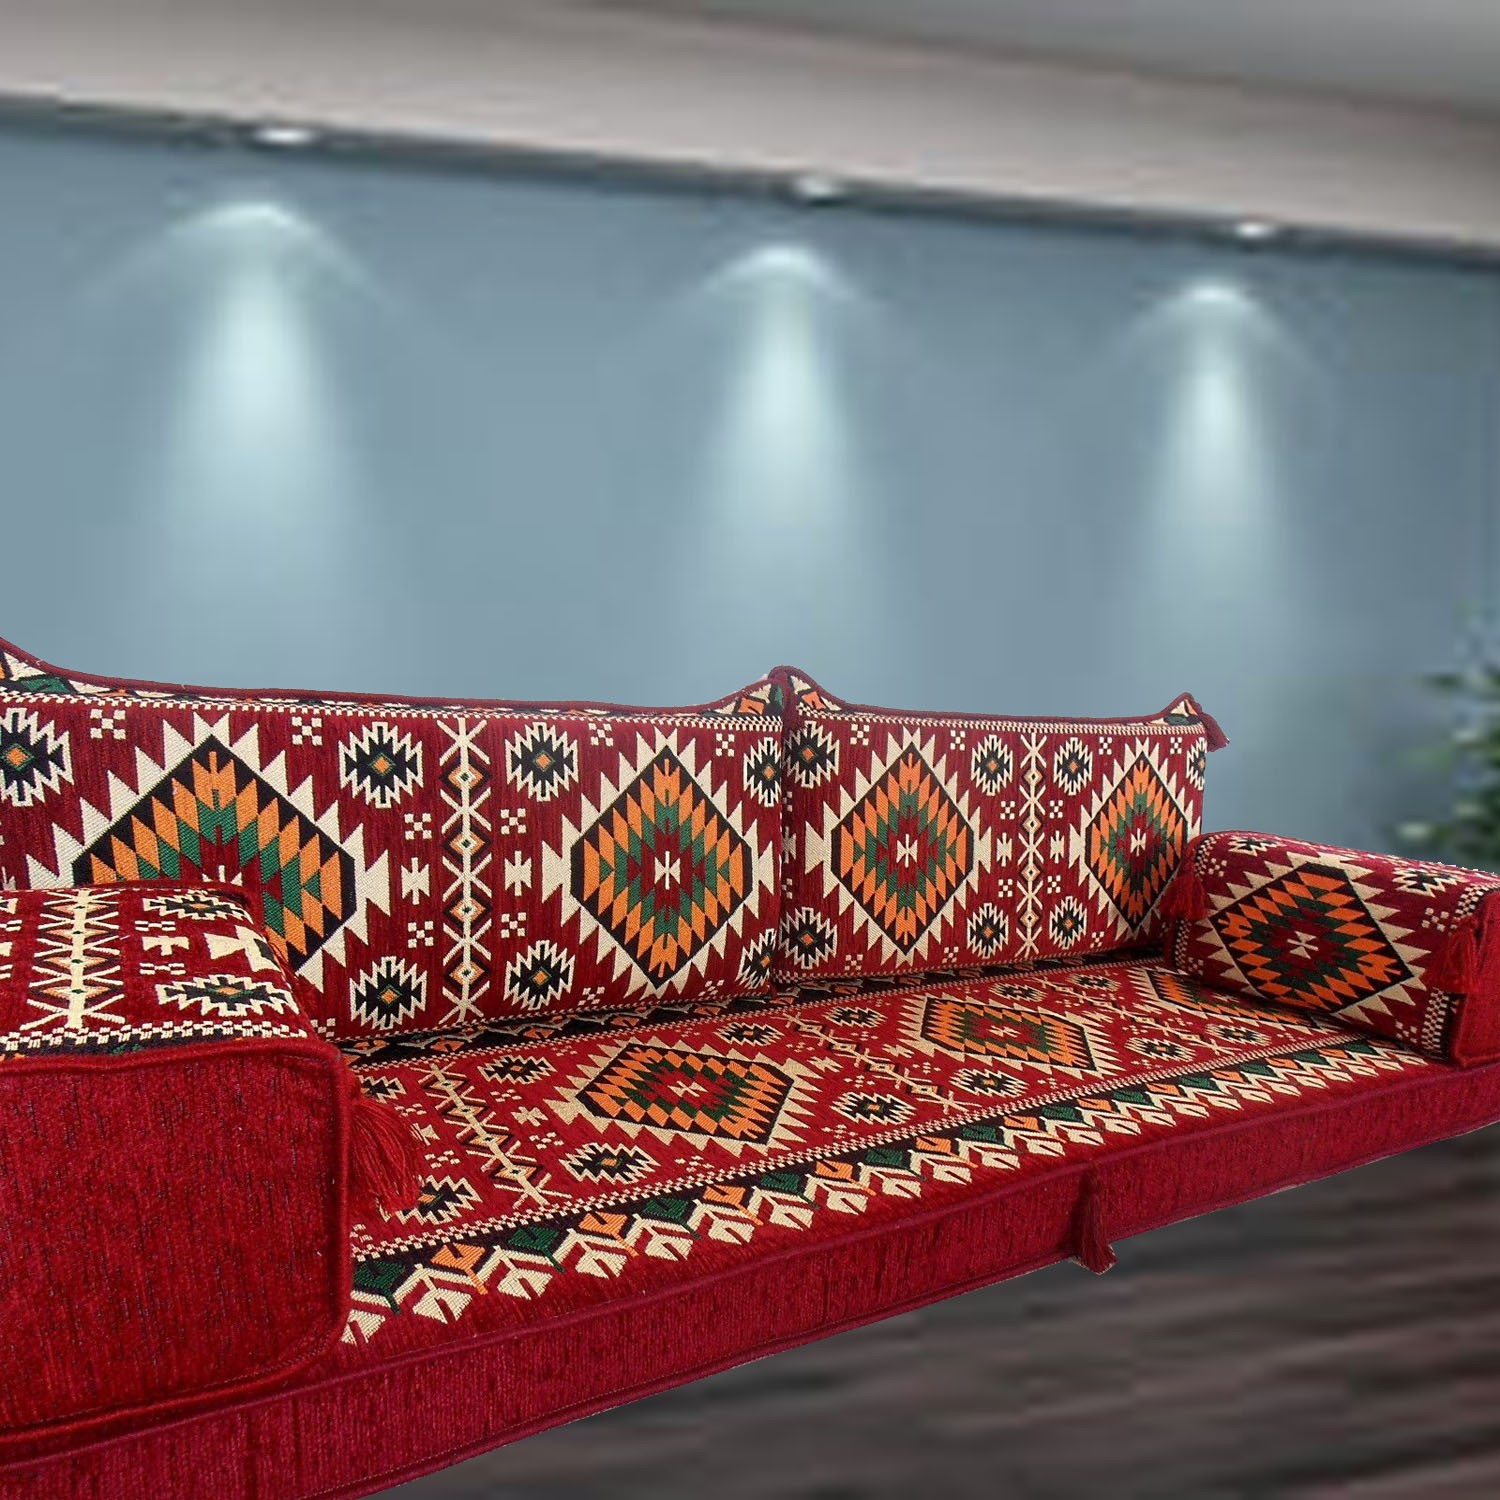 Floor sofa with double back pillows - SHI_FS253